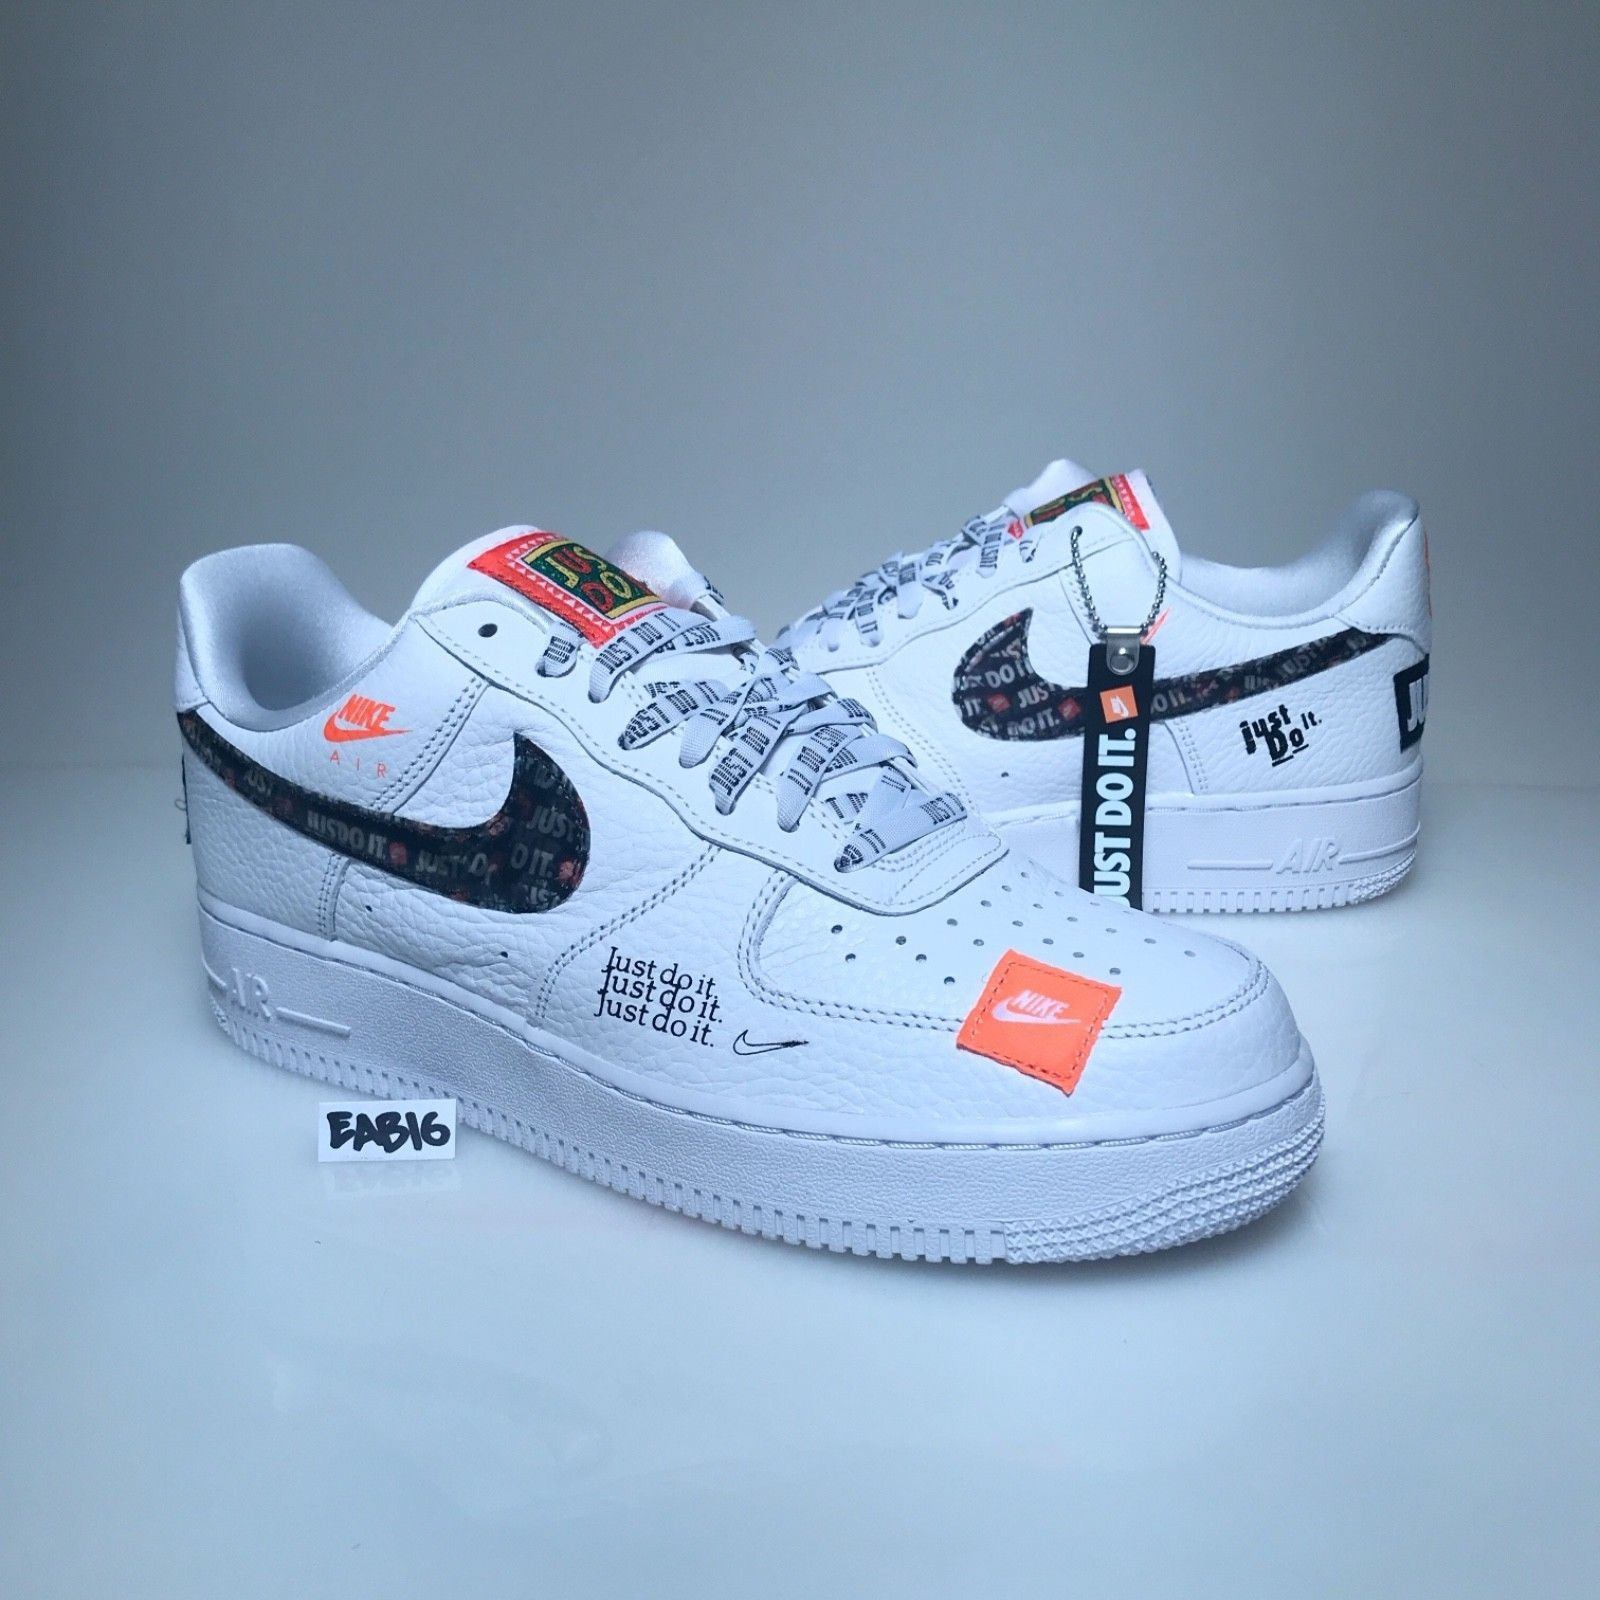 Details About Nike Air Force 1 One Low 07 Prm Jdi Just Do It White